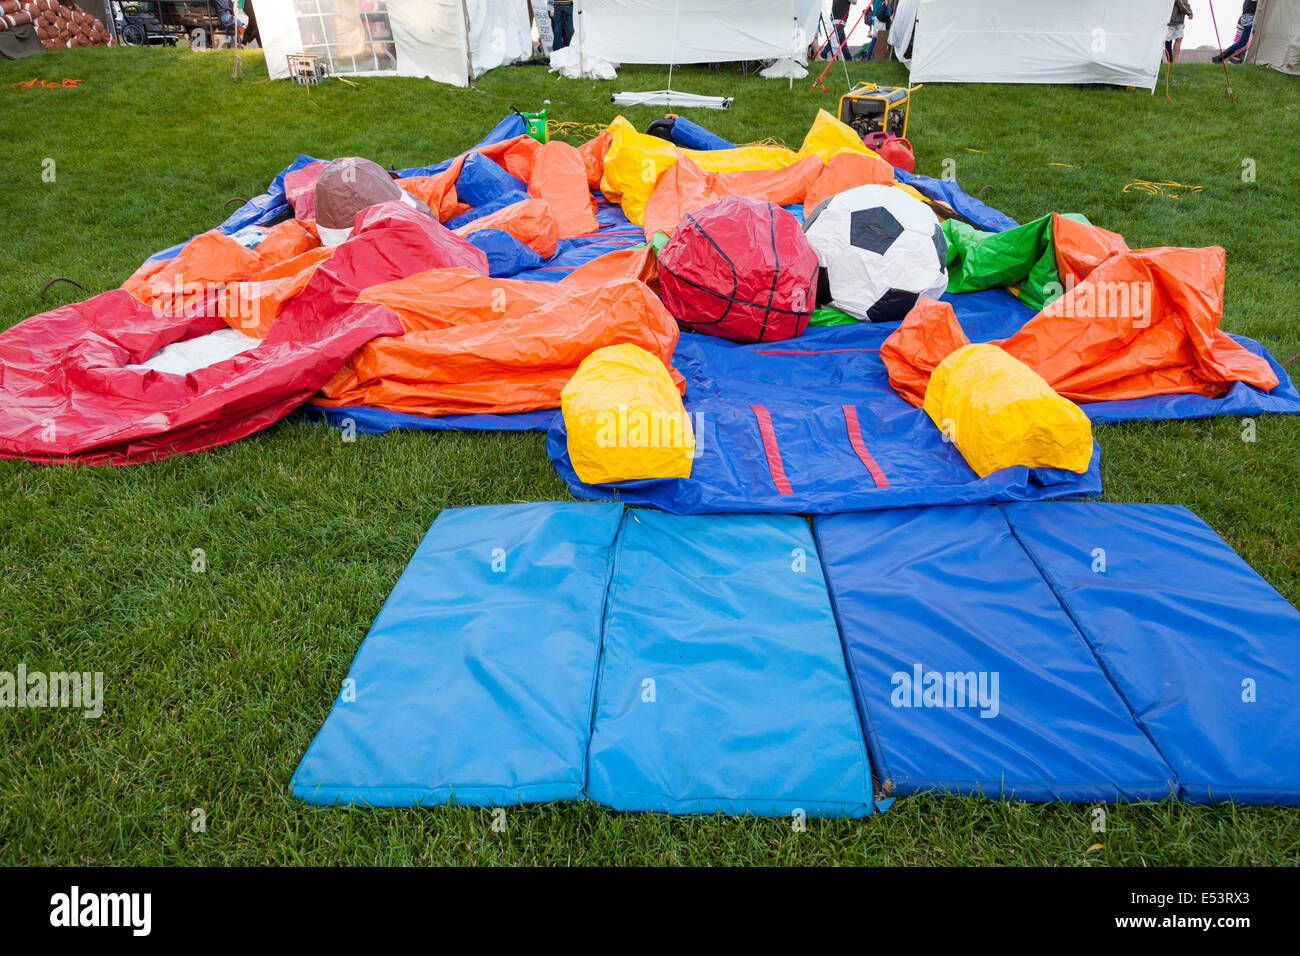 A deflated bouncy castle at the u0027Sound of Music Festivalu0027 at Spencer Smith Park & Deflated Bouncy Castle Stock Photos u0026 Deflated Bouncy Castle Stock ...